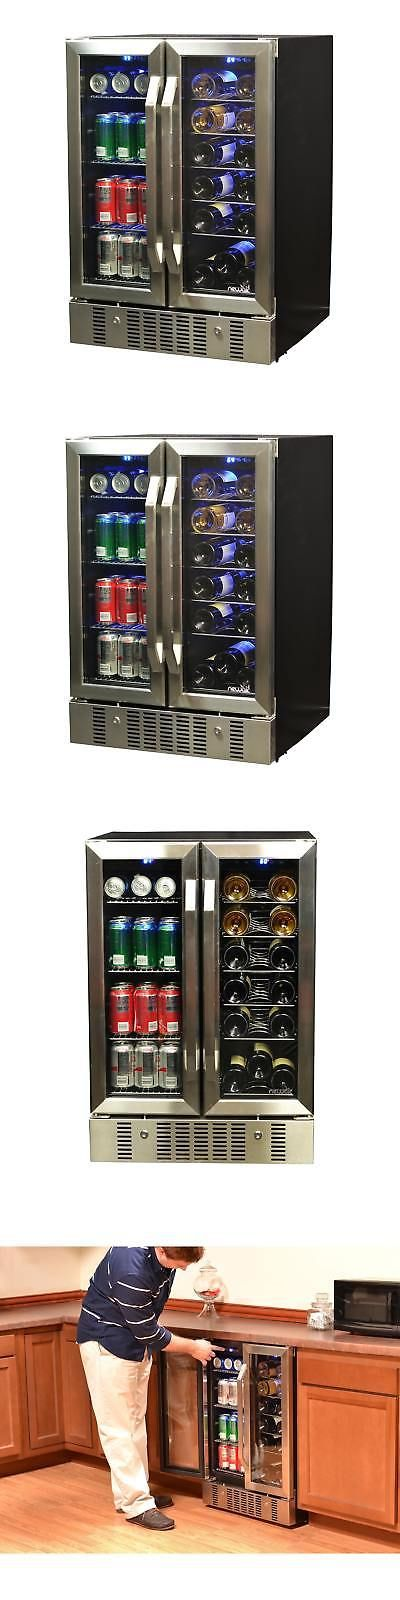 Wine Fridges and Cellars 177750: Newair 18 Bottle 52 Can, Dual Zone Wine And Beverage Cooler -> BUY IT NOW ONLY: $916.49 on eBay!